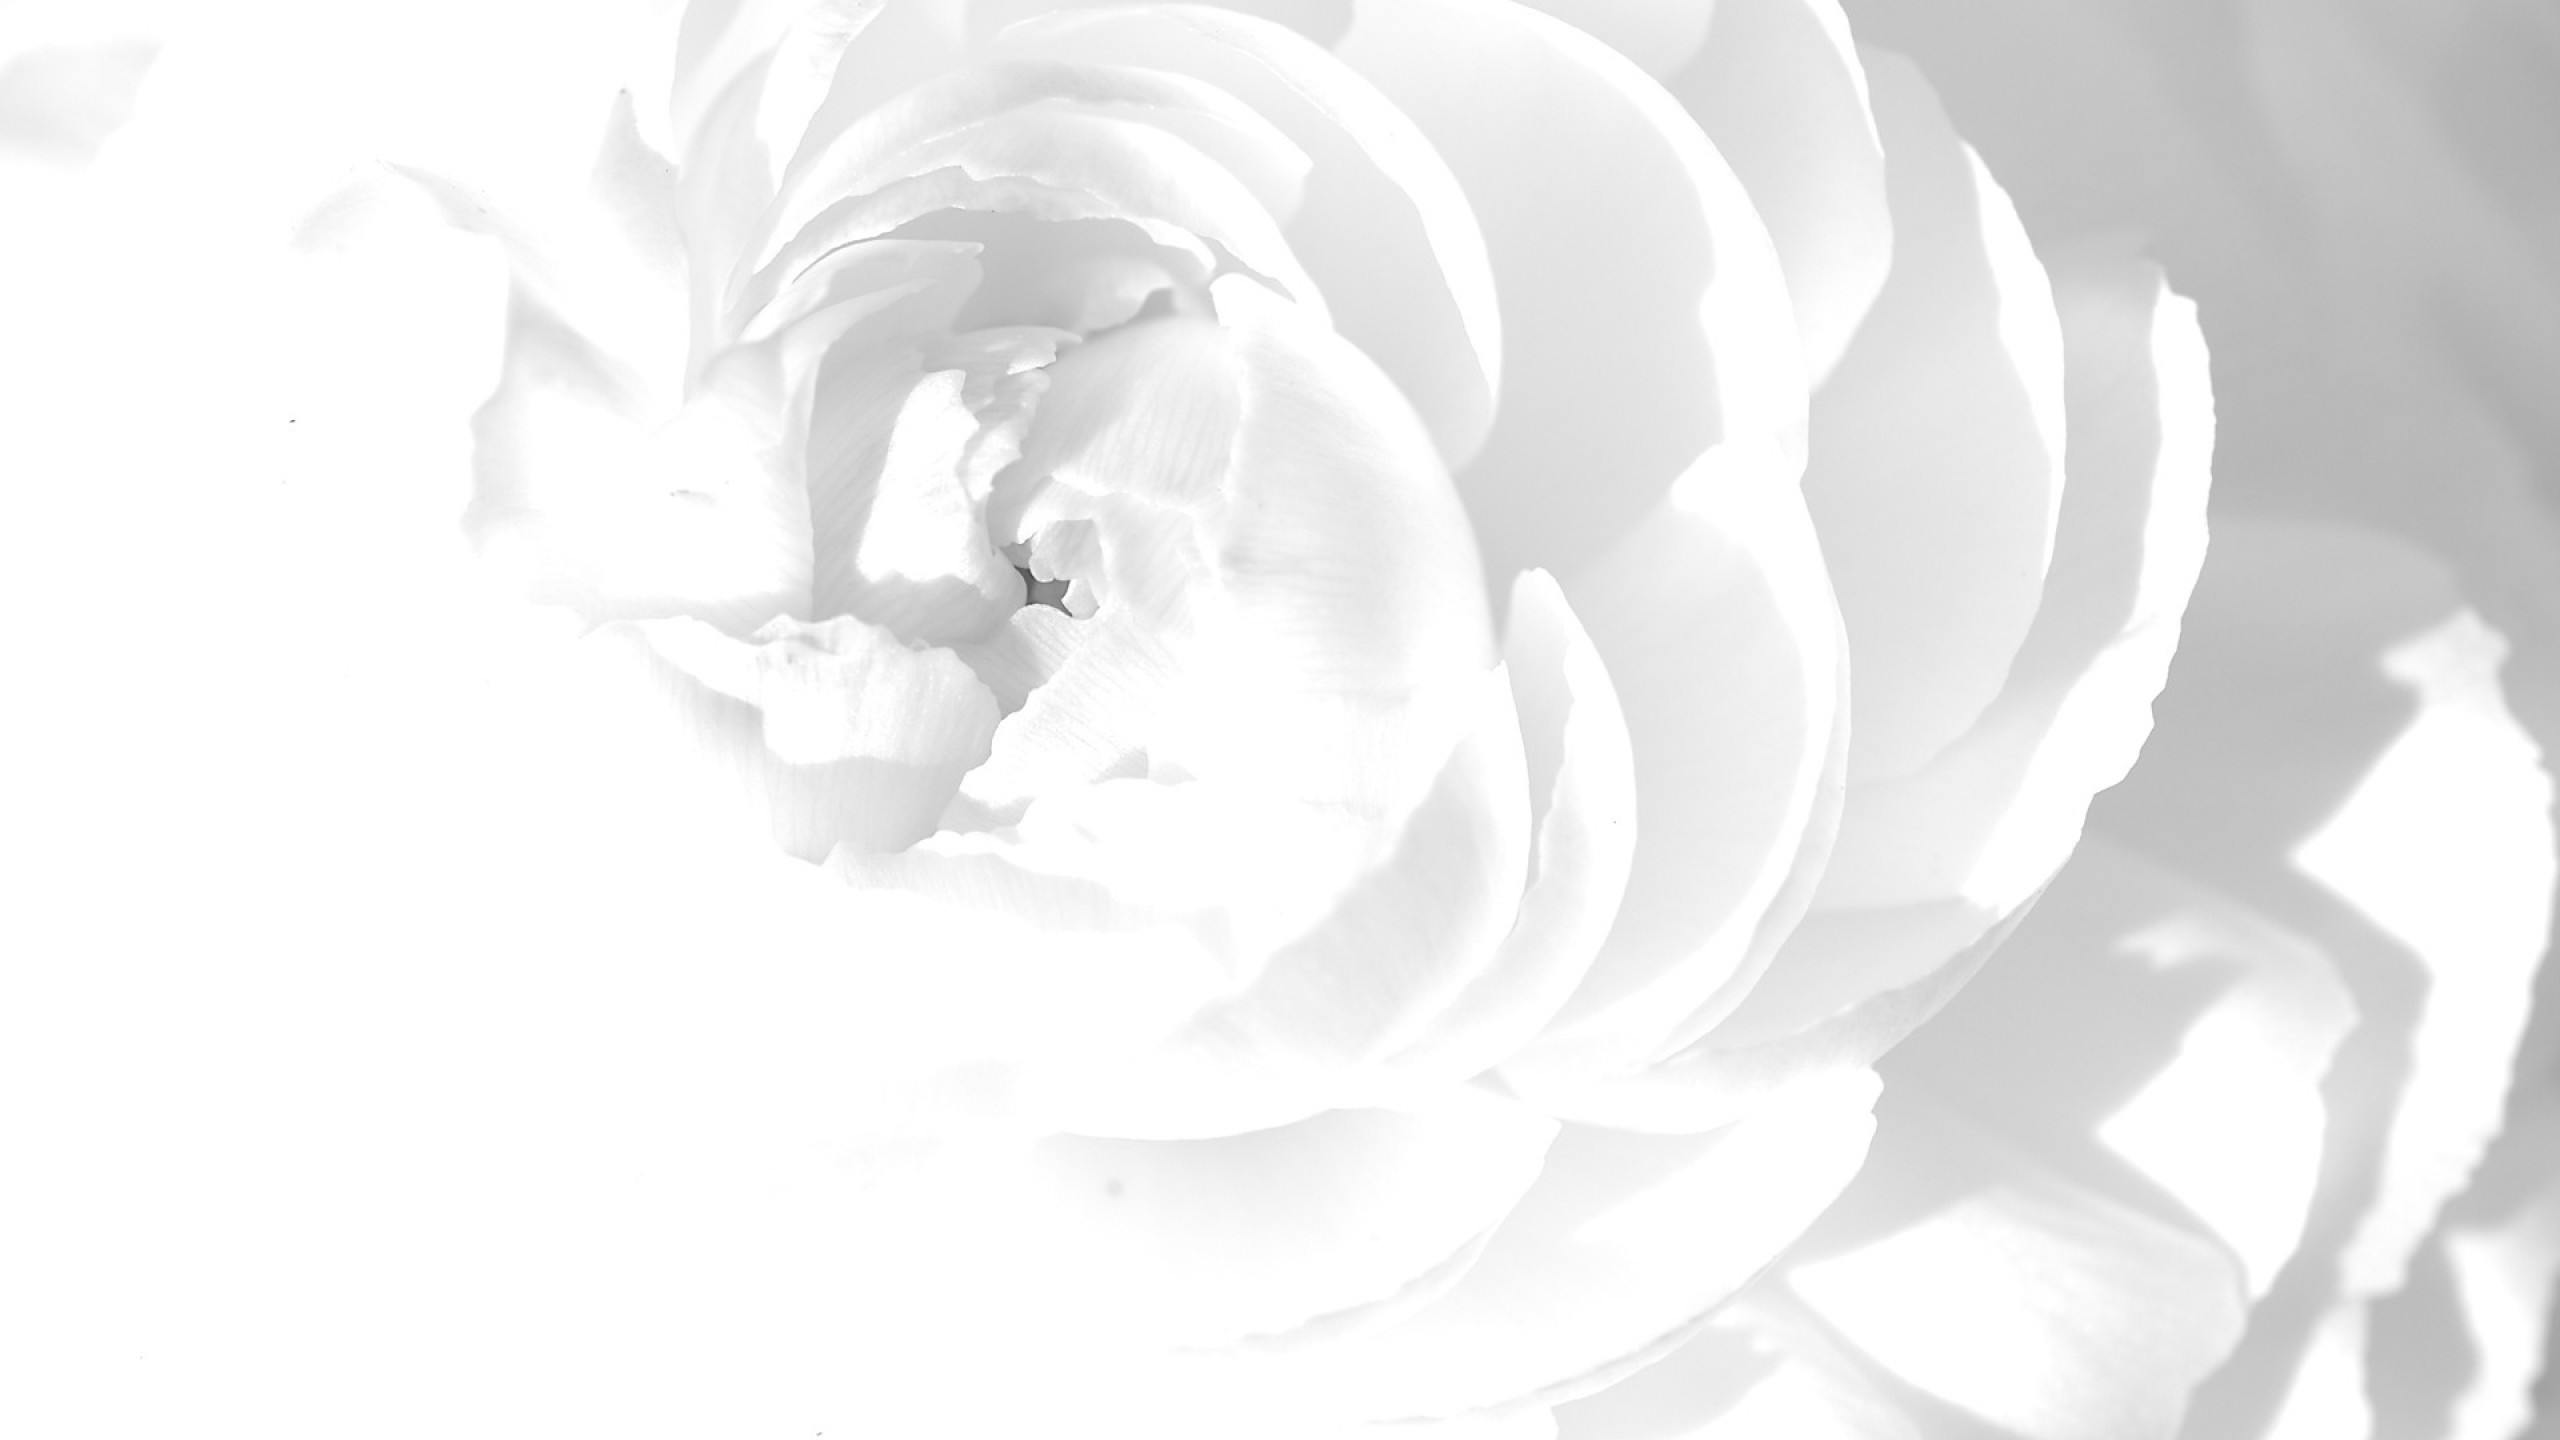 Pink Feathers Falling Wallpaper White Roses Background 183 ① Wallpapertag